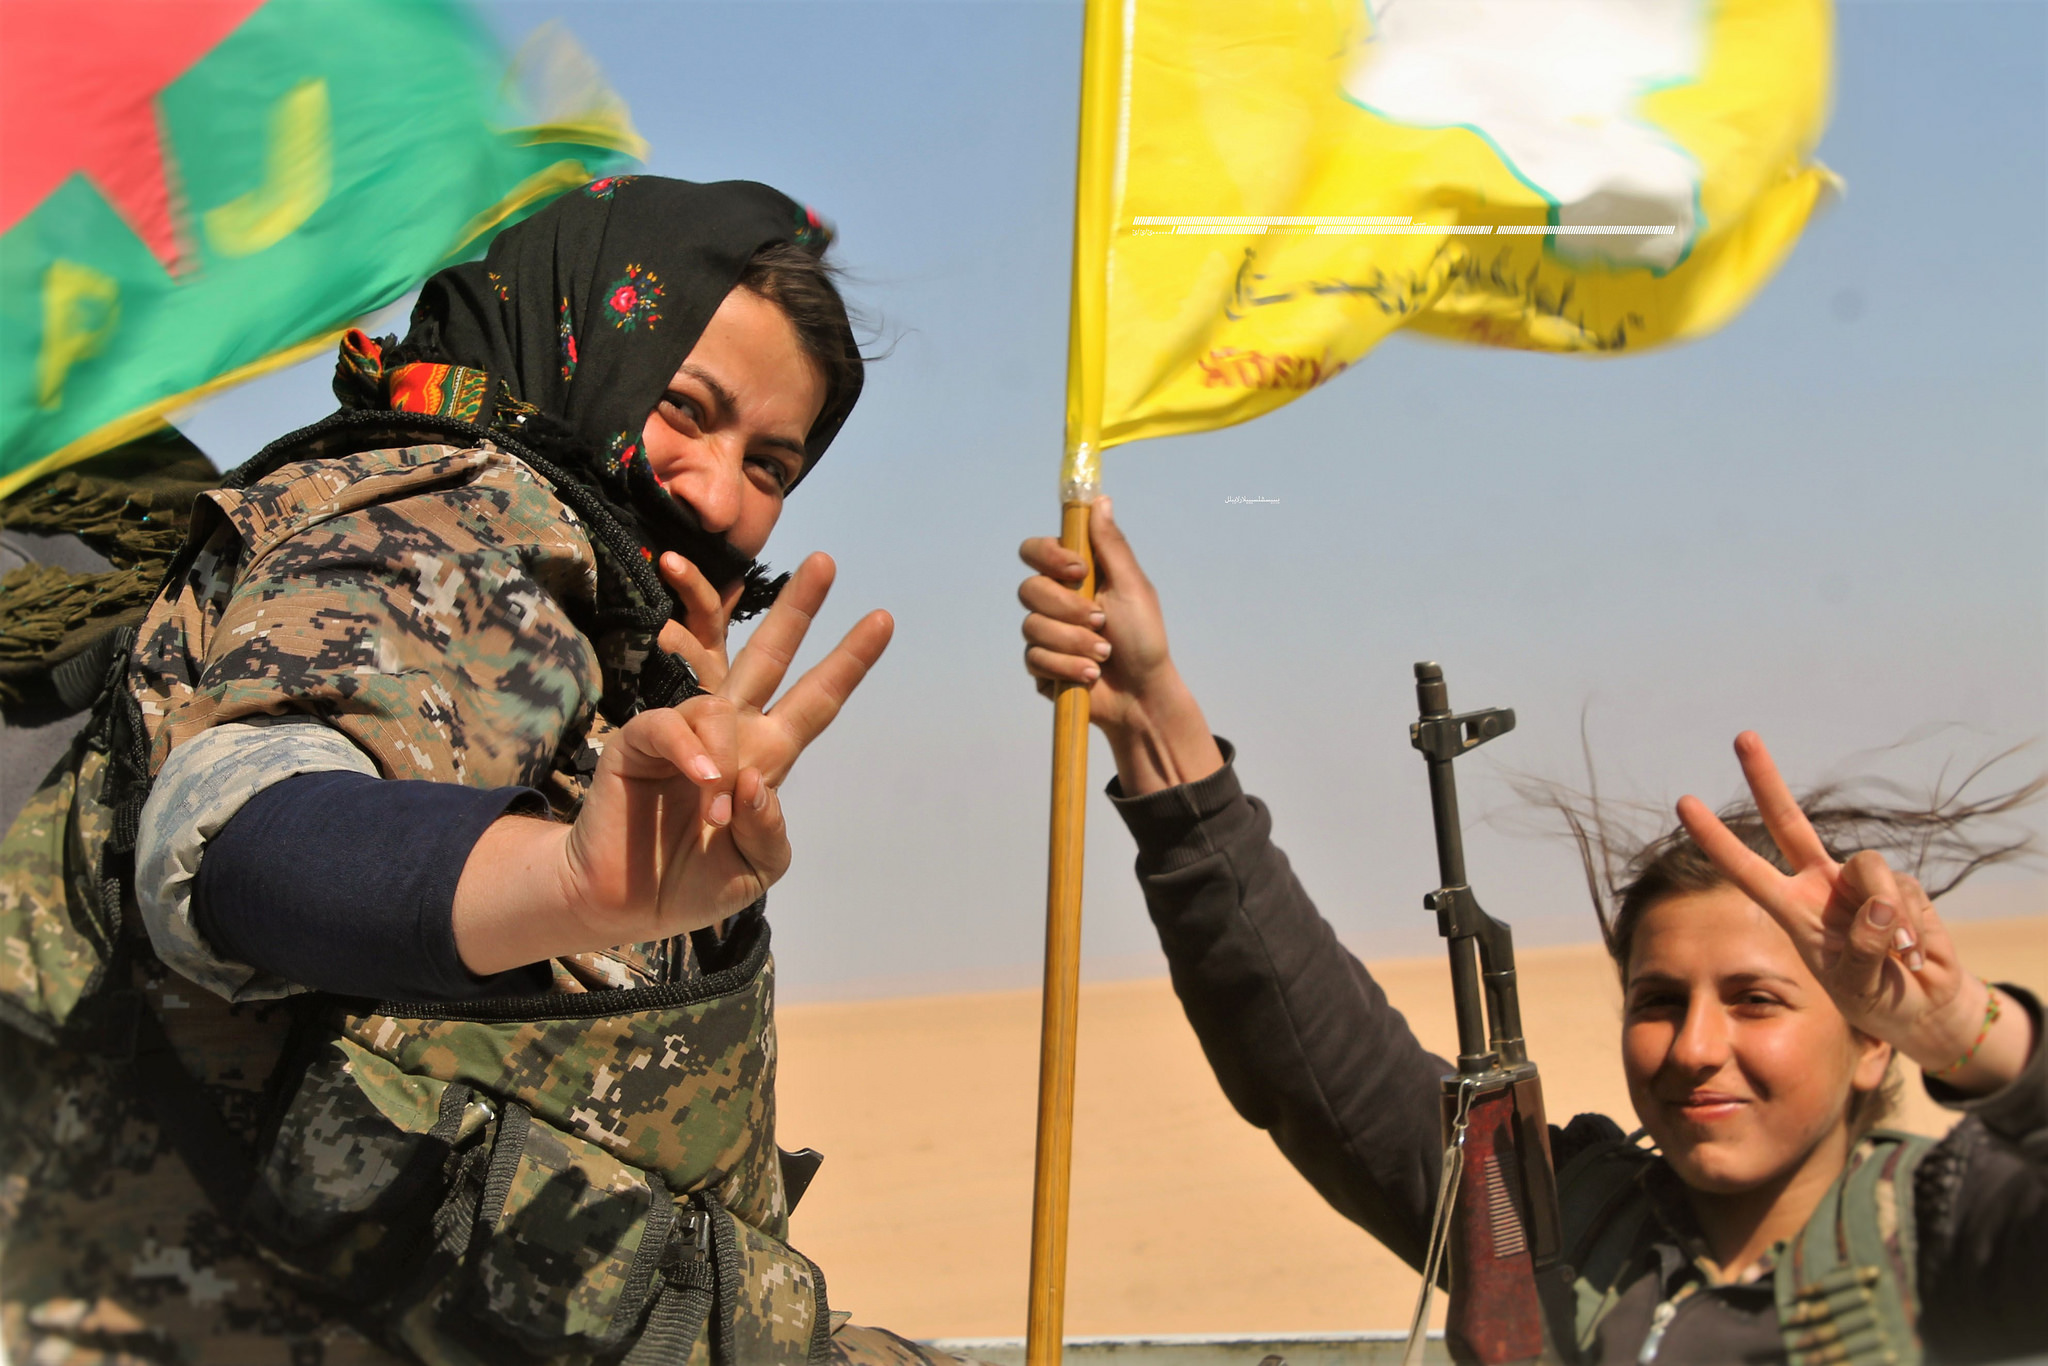 Exclusive: Kurds in Rojava have taught the rest of the world how to implement Bookchin's ideas, Bookchin's longtime companion says